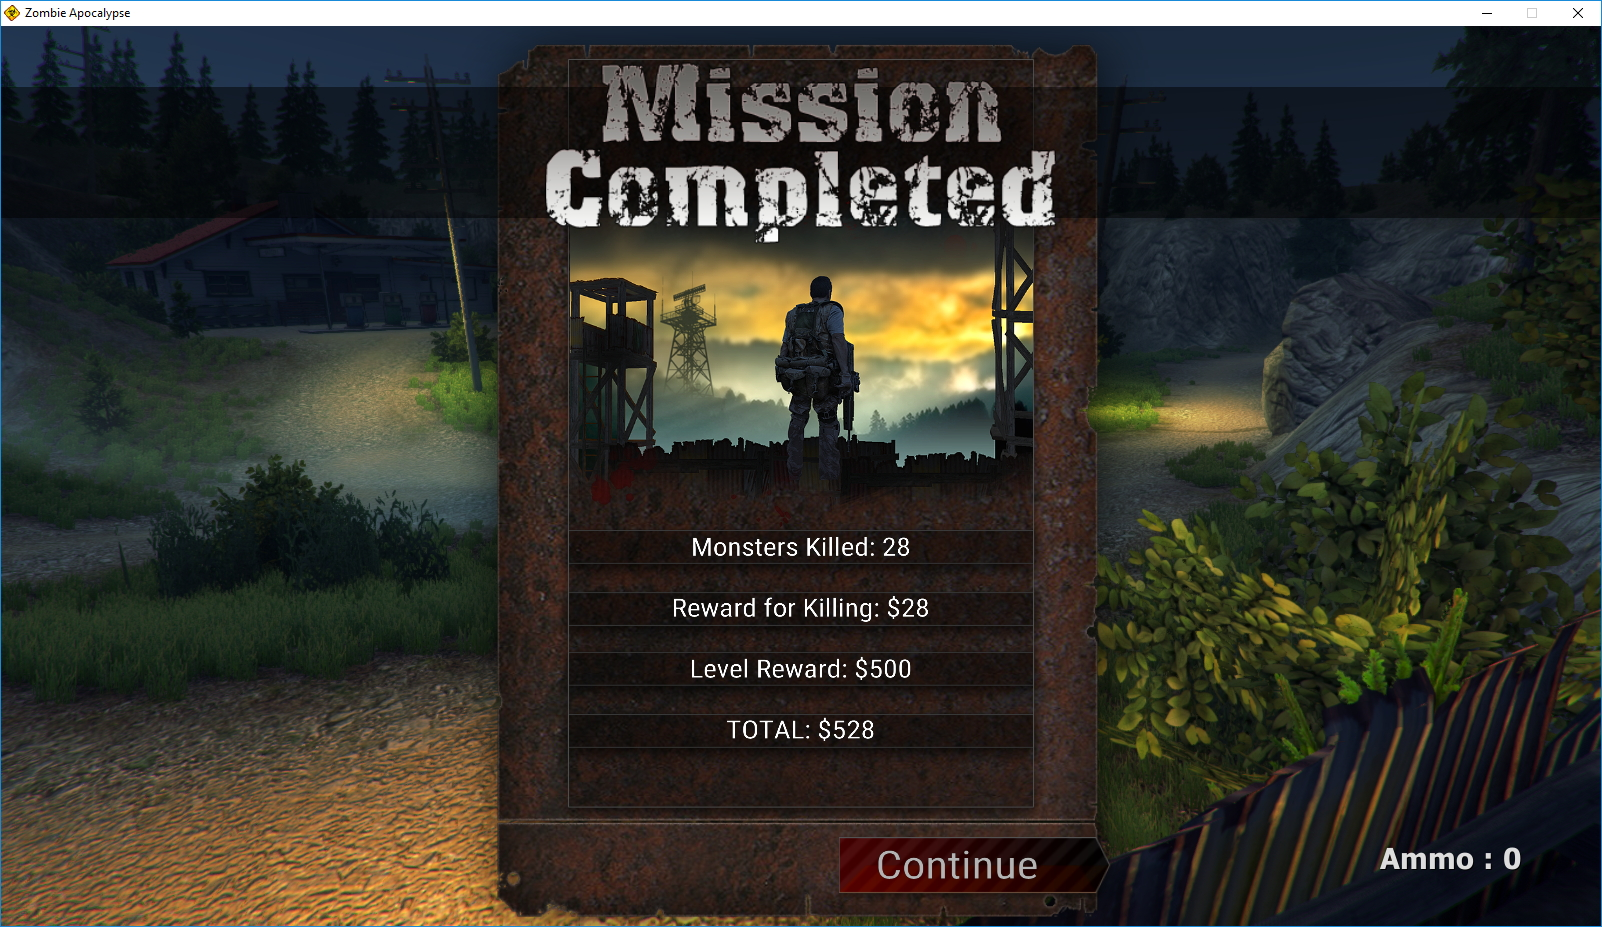 Completed Level Statistics Window